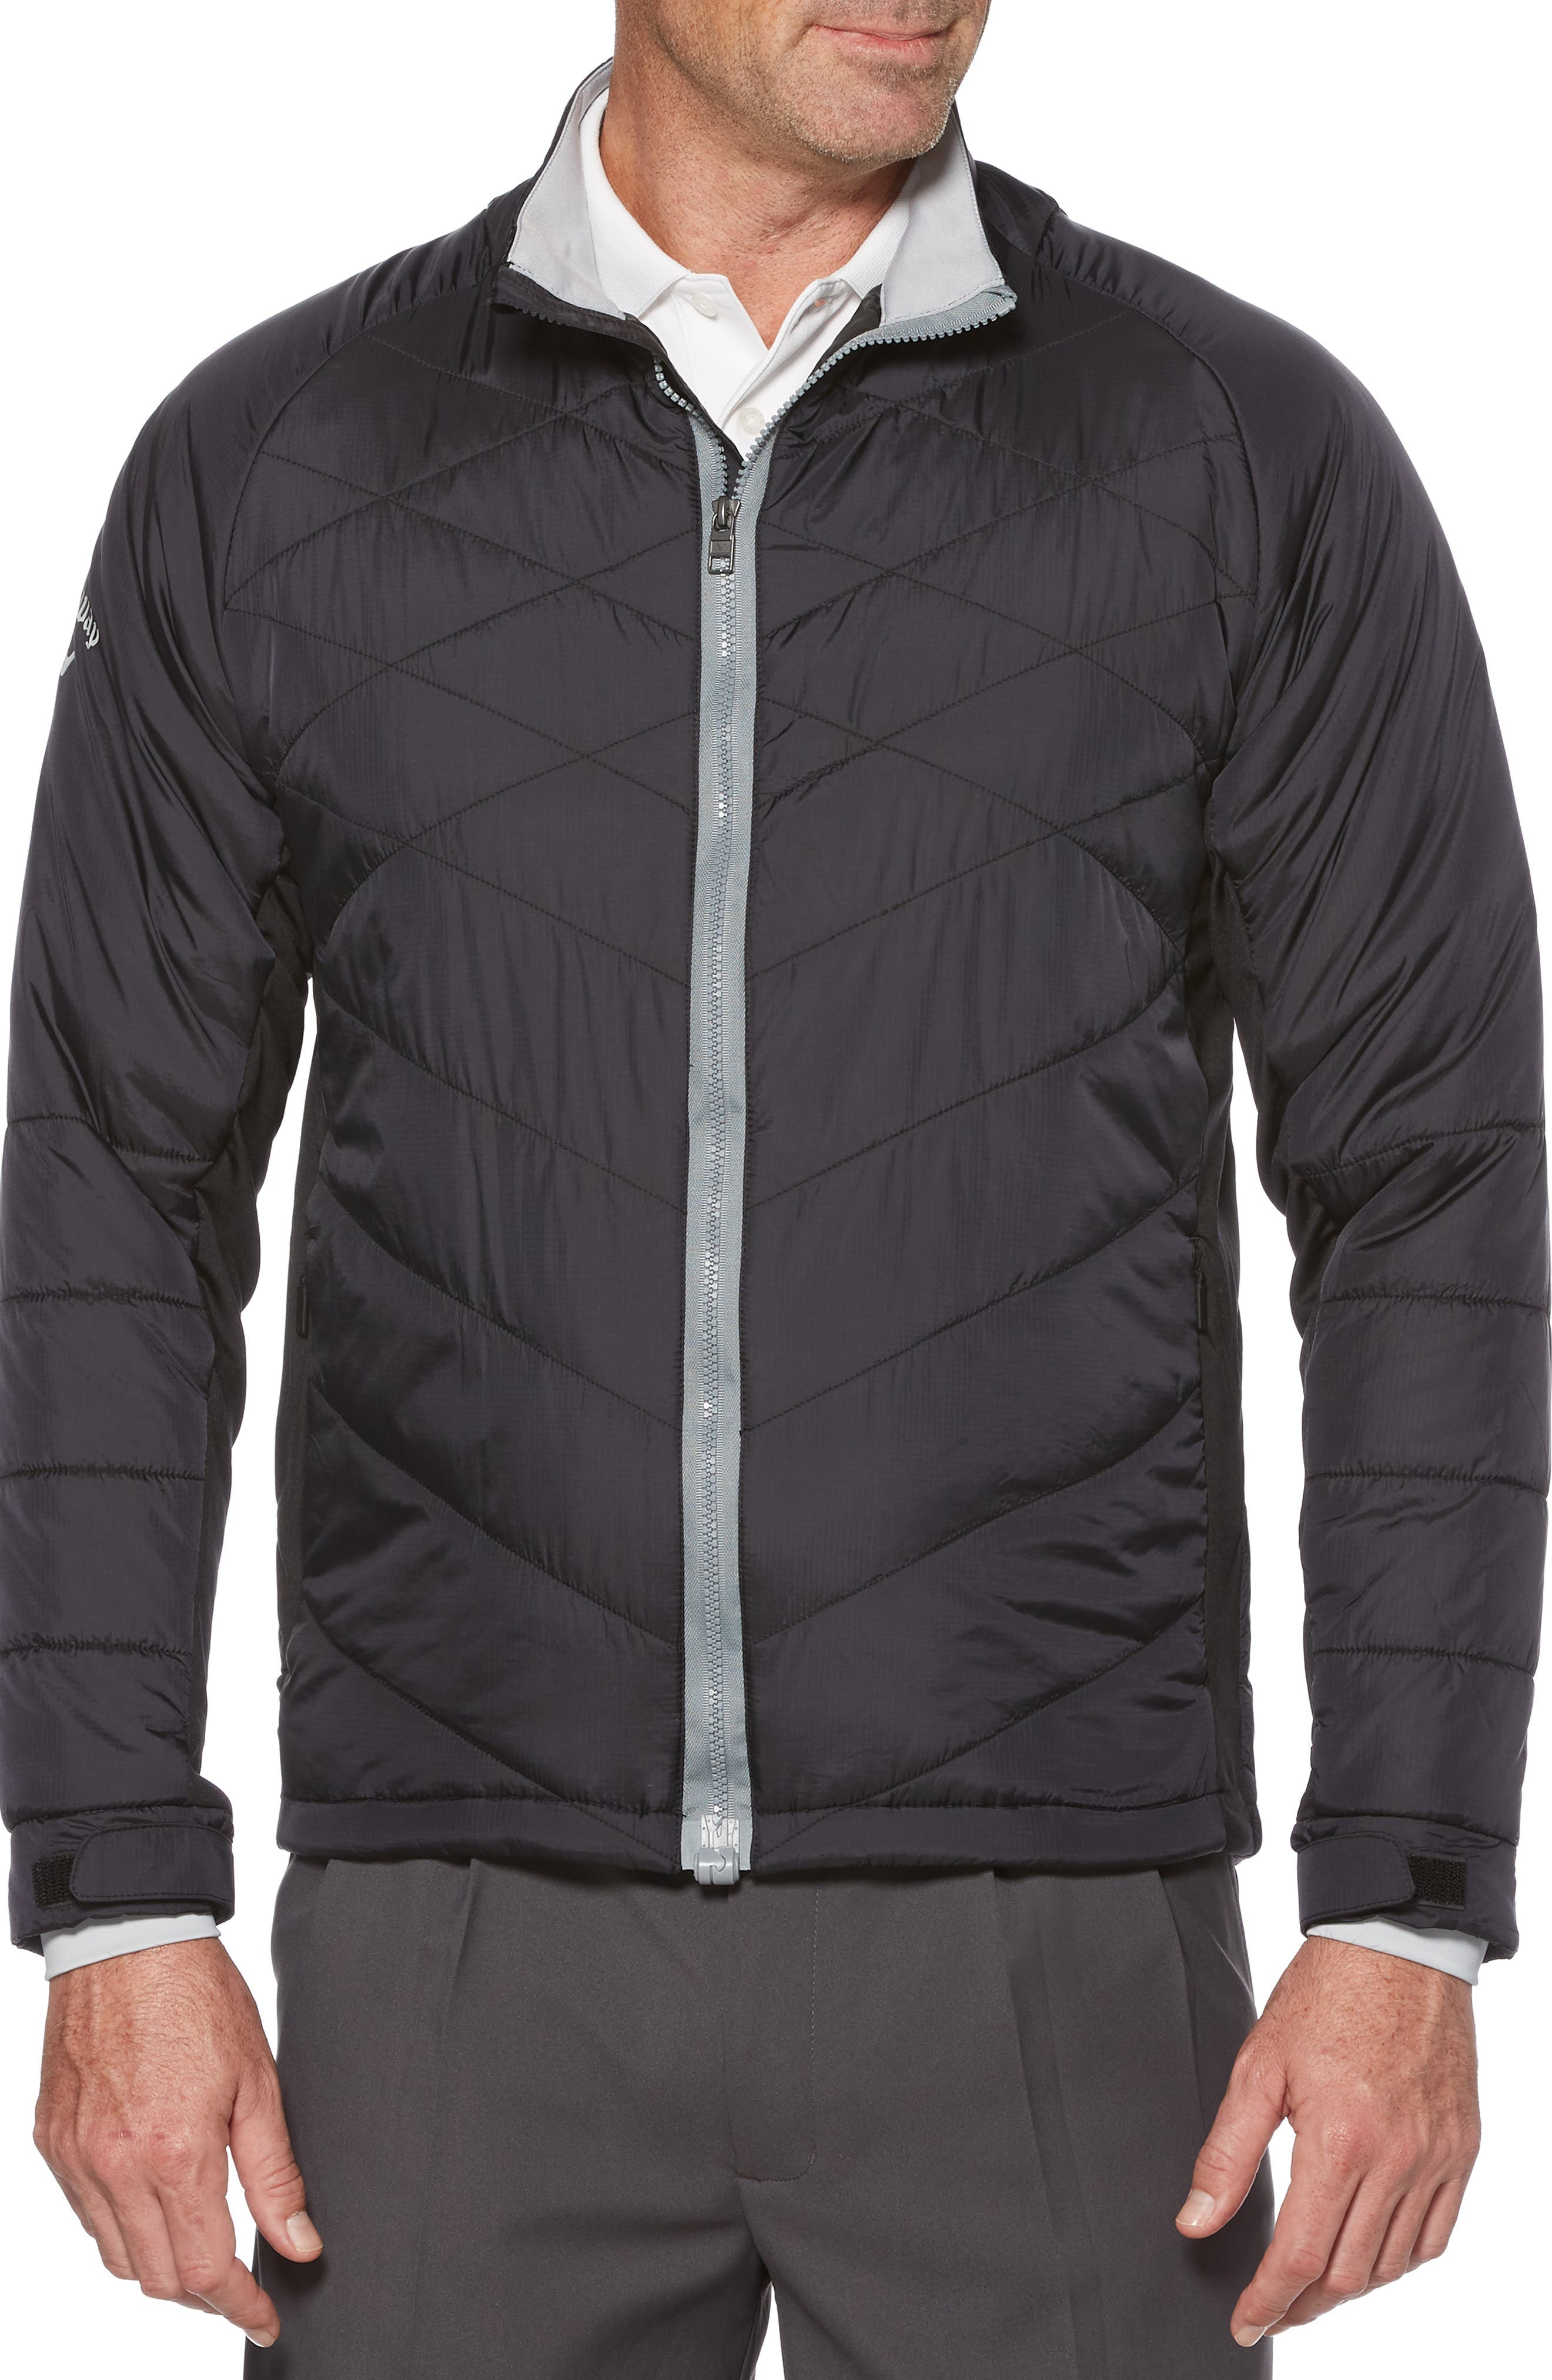 Performance Puffer Jacket,                             Main thumbnail 1, color,                             002